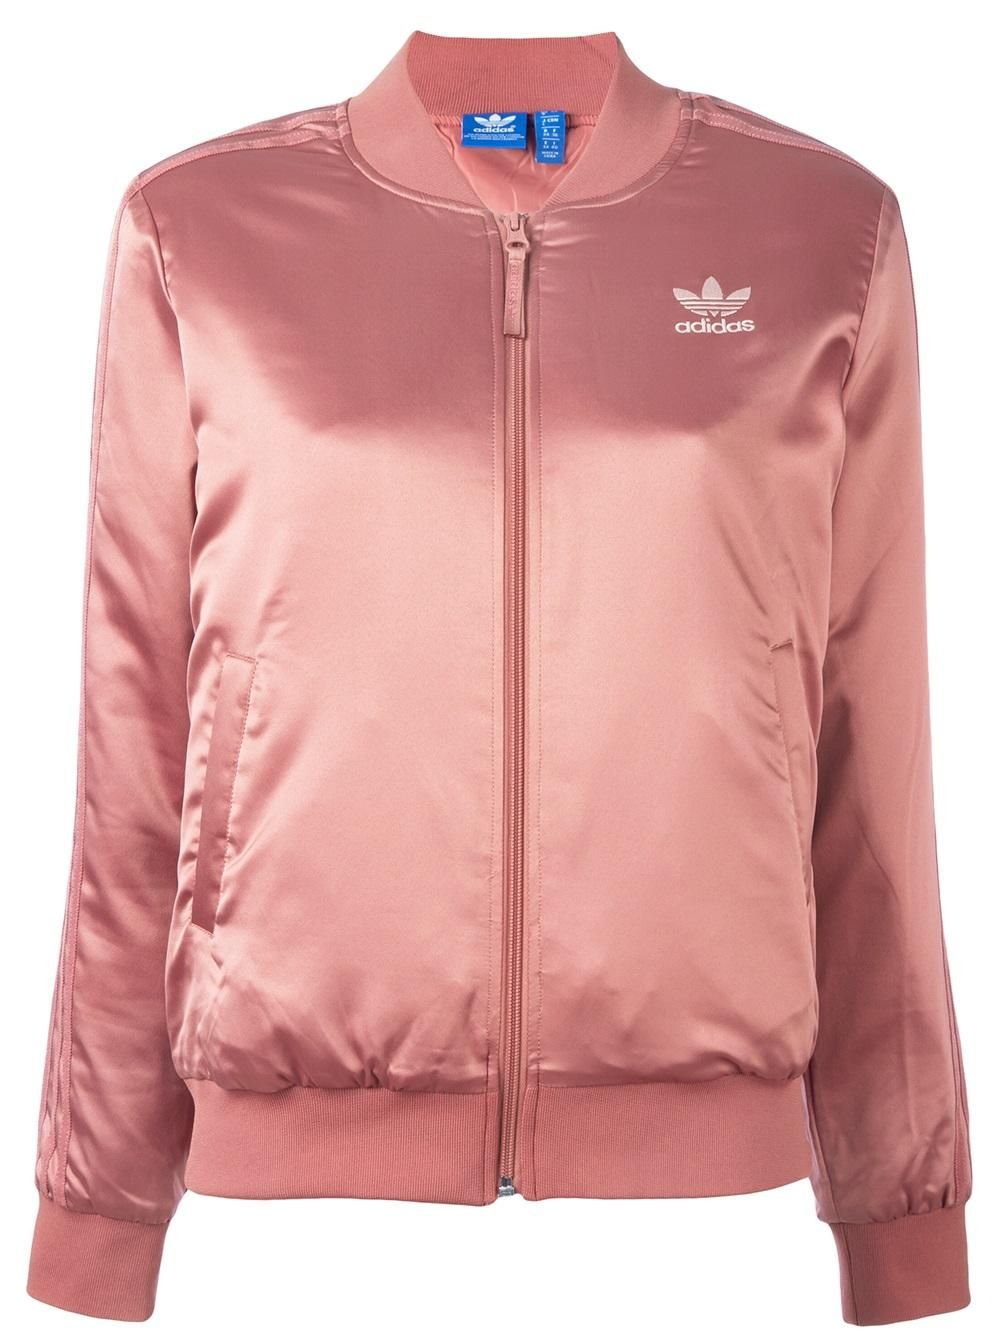 779bdc0aef50 Image result for pink satin bomber jacket womens. Adidas satin track ...